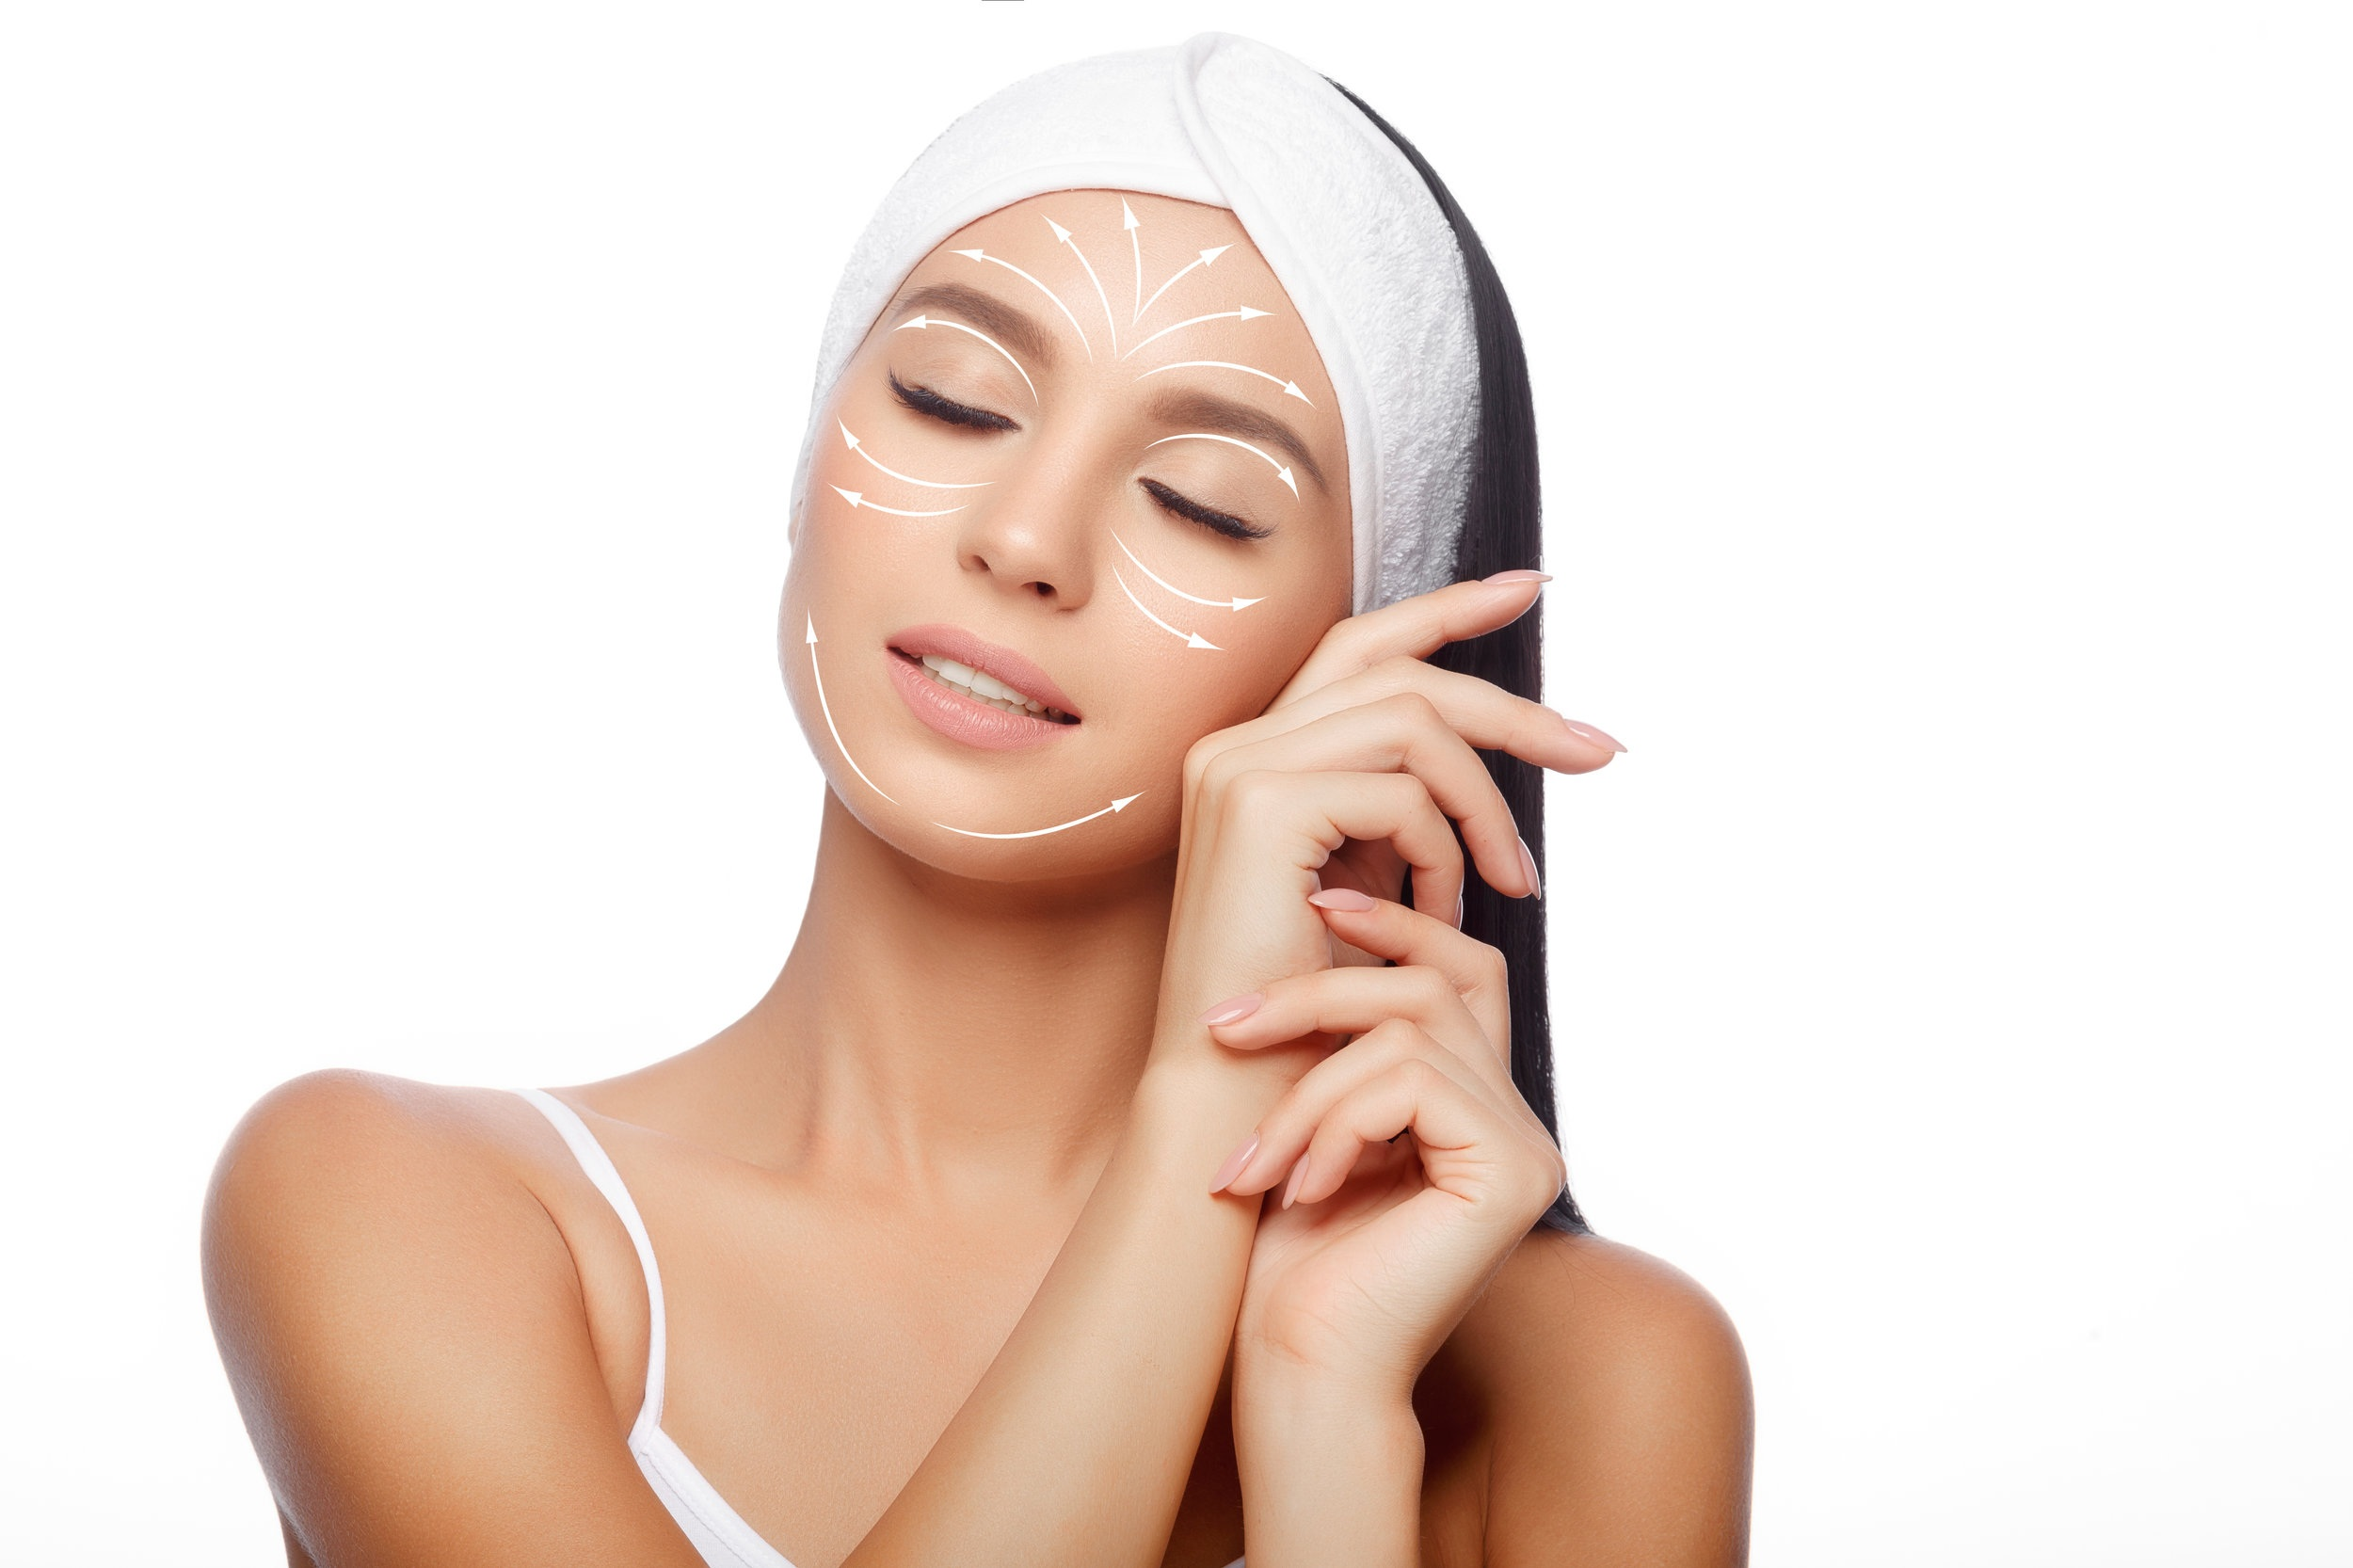 Pro-Ageing Facial Massage - Pro-ageing massage will stimulate your muscles helping to lift and tone whilst draining lymphatic fluid reducing puffiness in your face